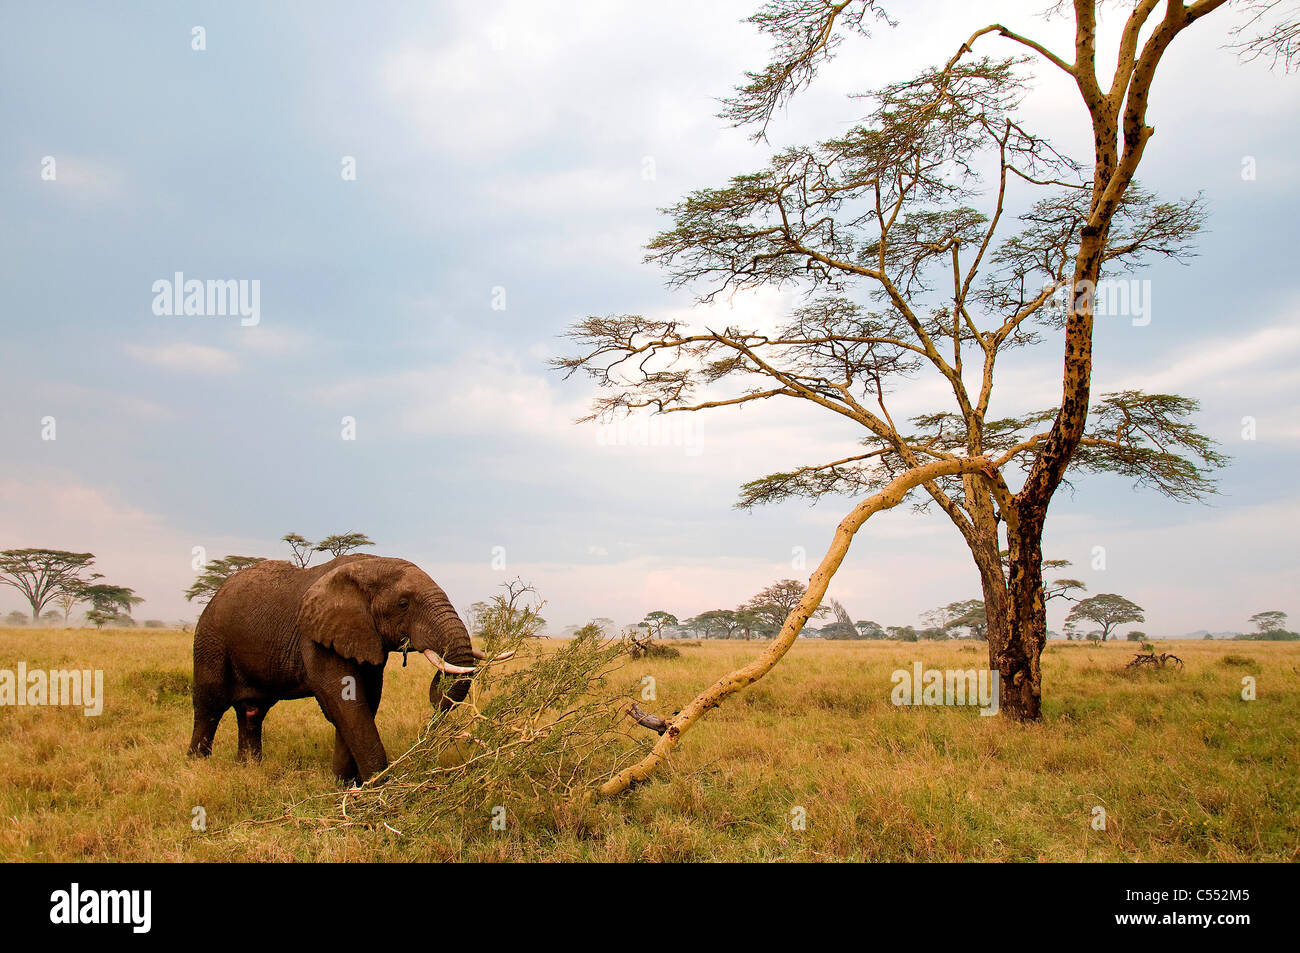 African elephant (Loxodonta africana) grazing in a forest, Serengeti National Park, Tanzania Stock Photo